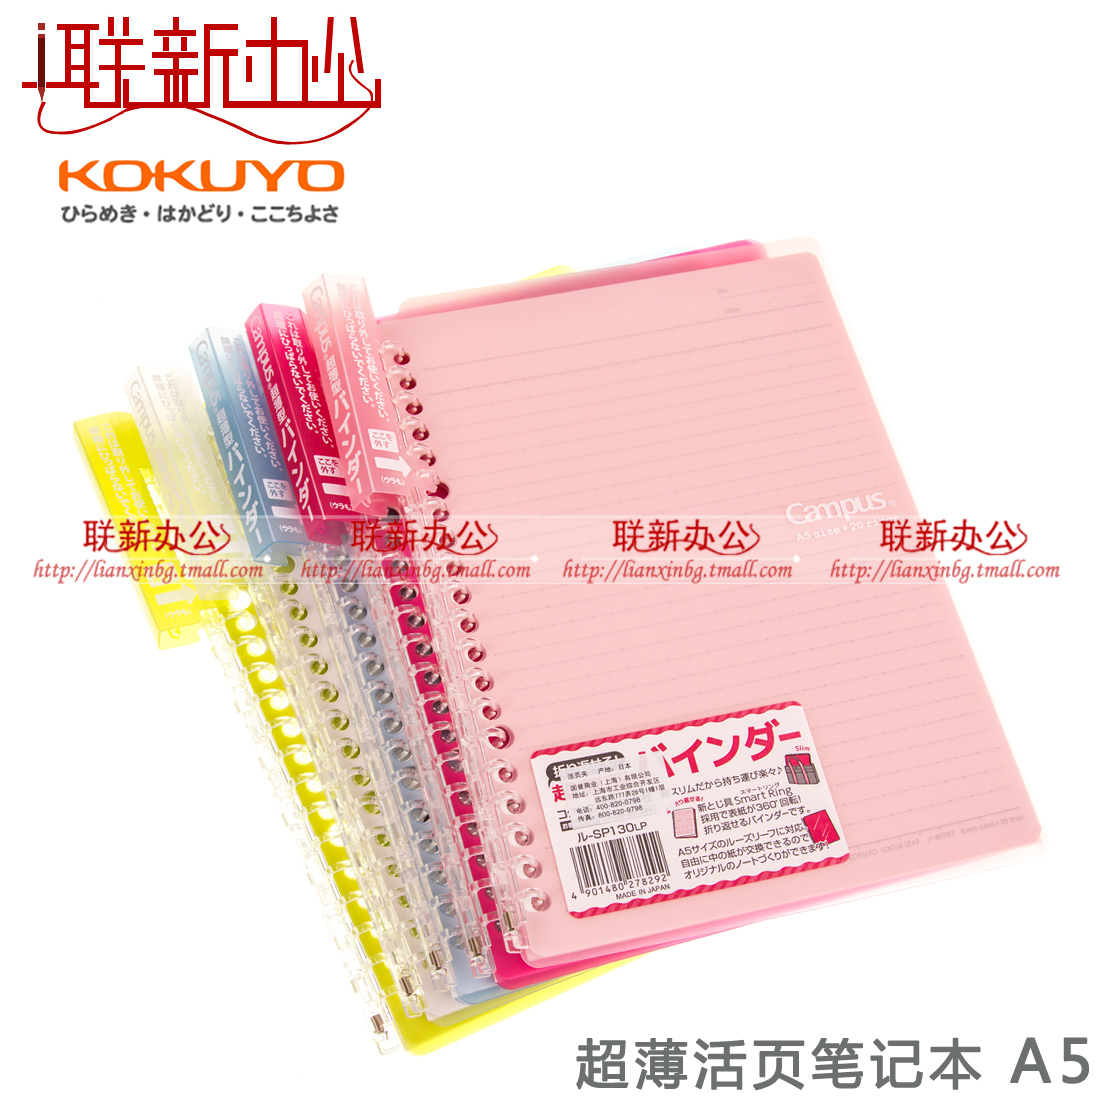 Japan kokuyo kokuyo campus/smartring salluce notebook folder can be folded thin it is true